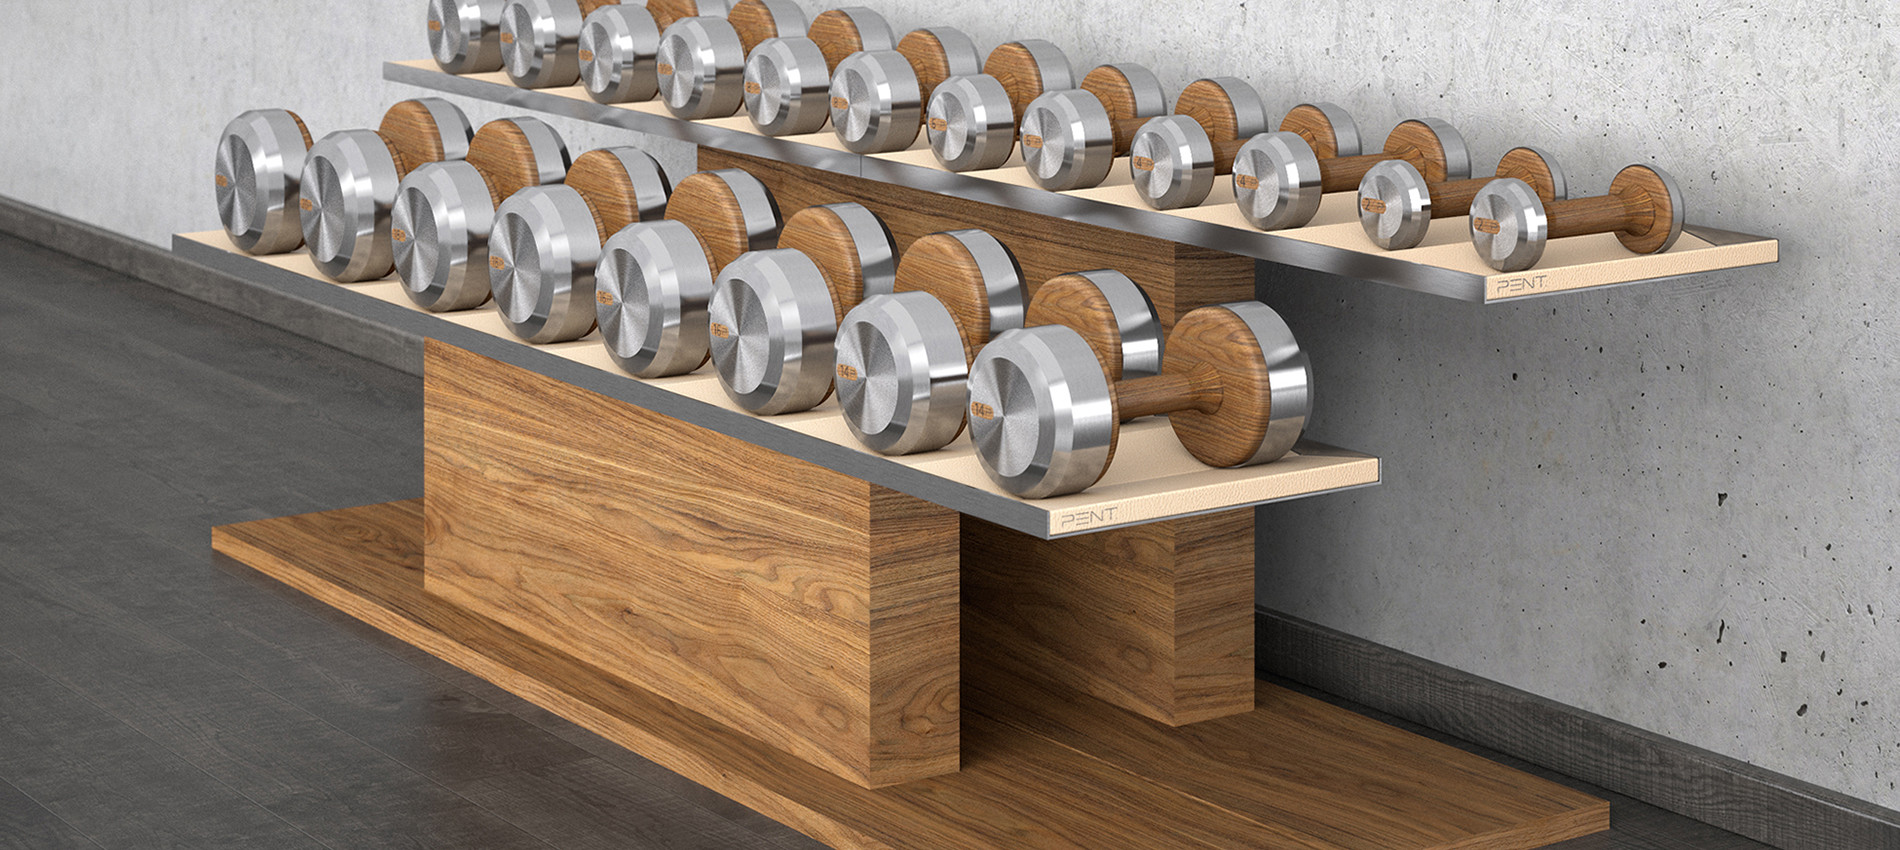 Colmia Luxury Dumbbells